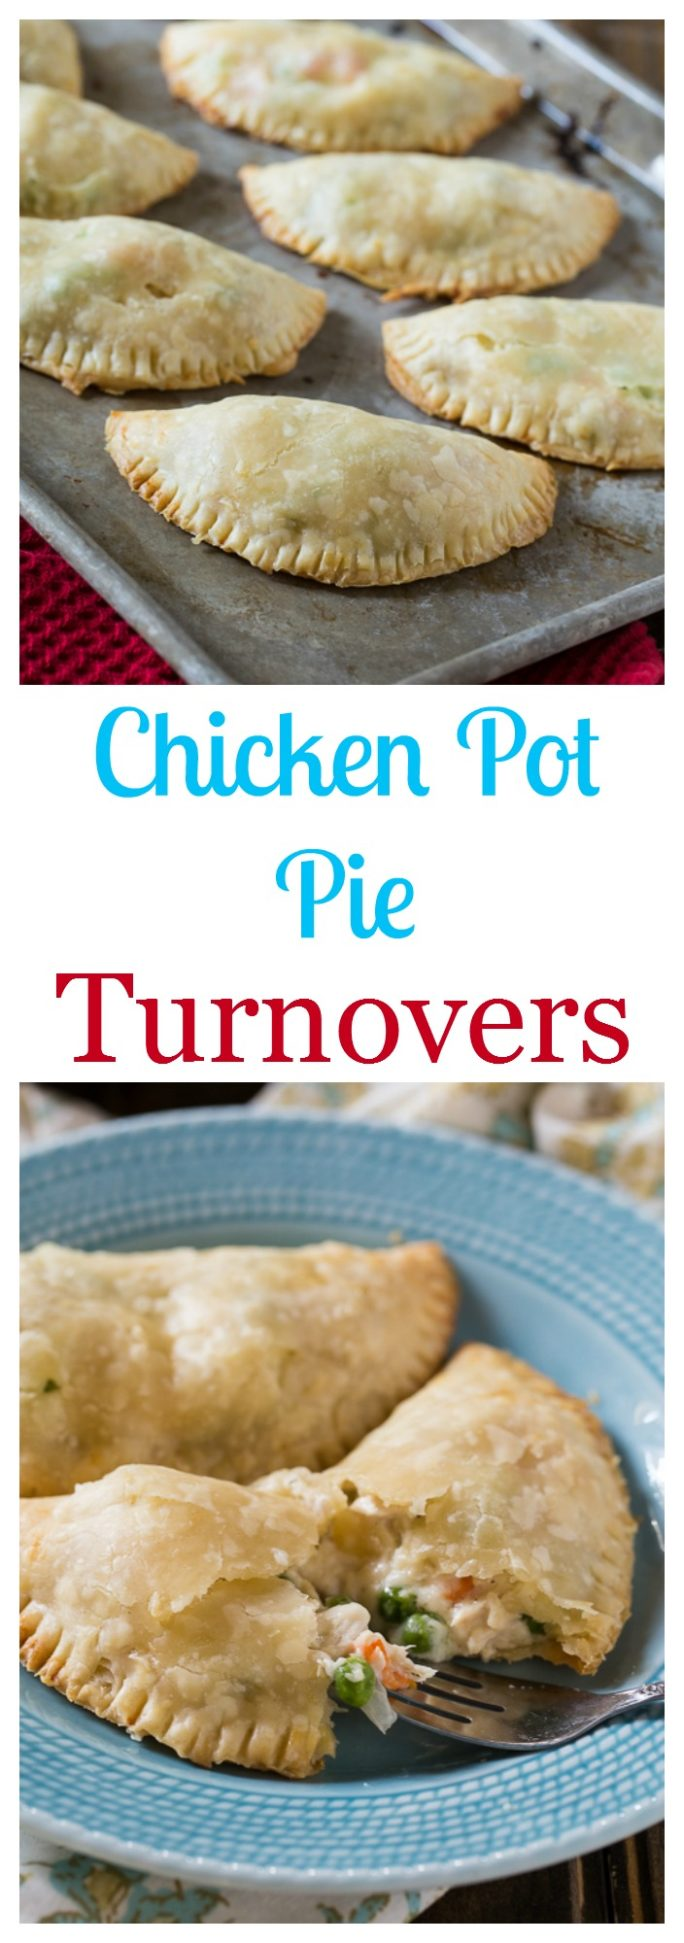 Easy Chicken Pot Pie Turnovers made with refrigerated pie crusts